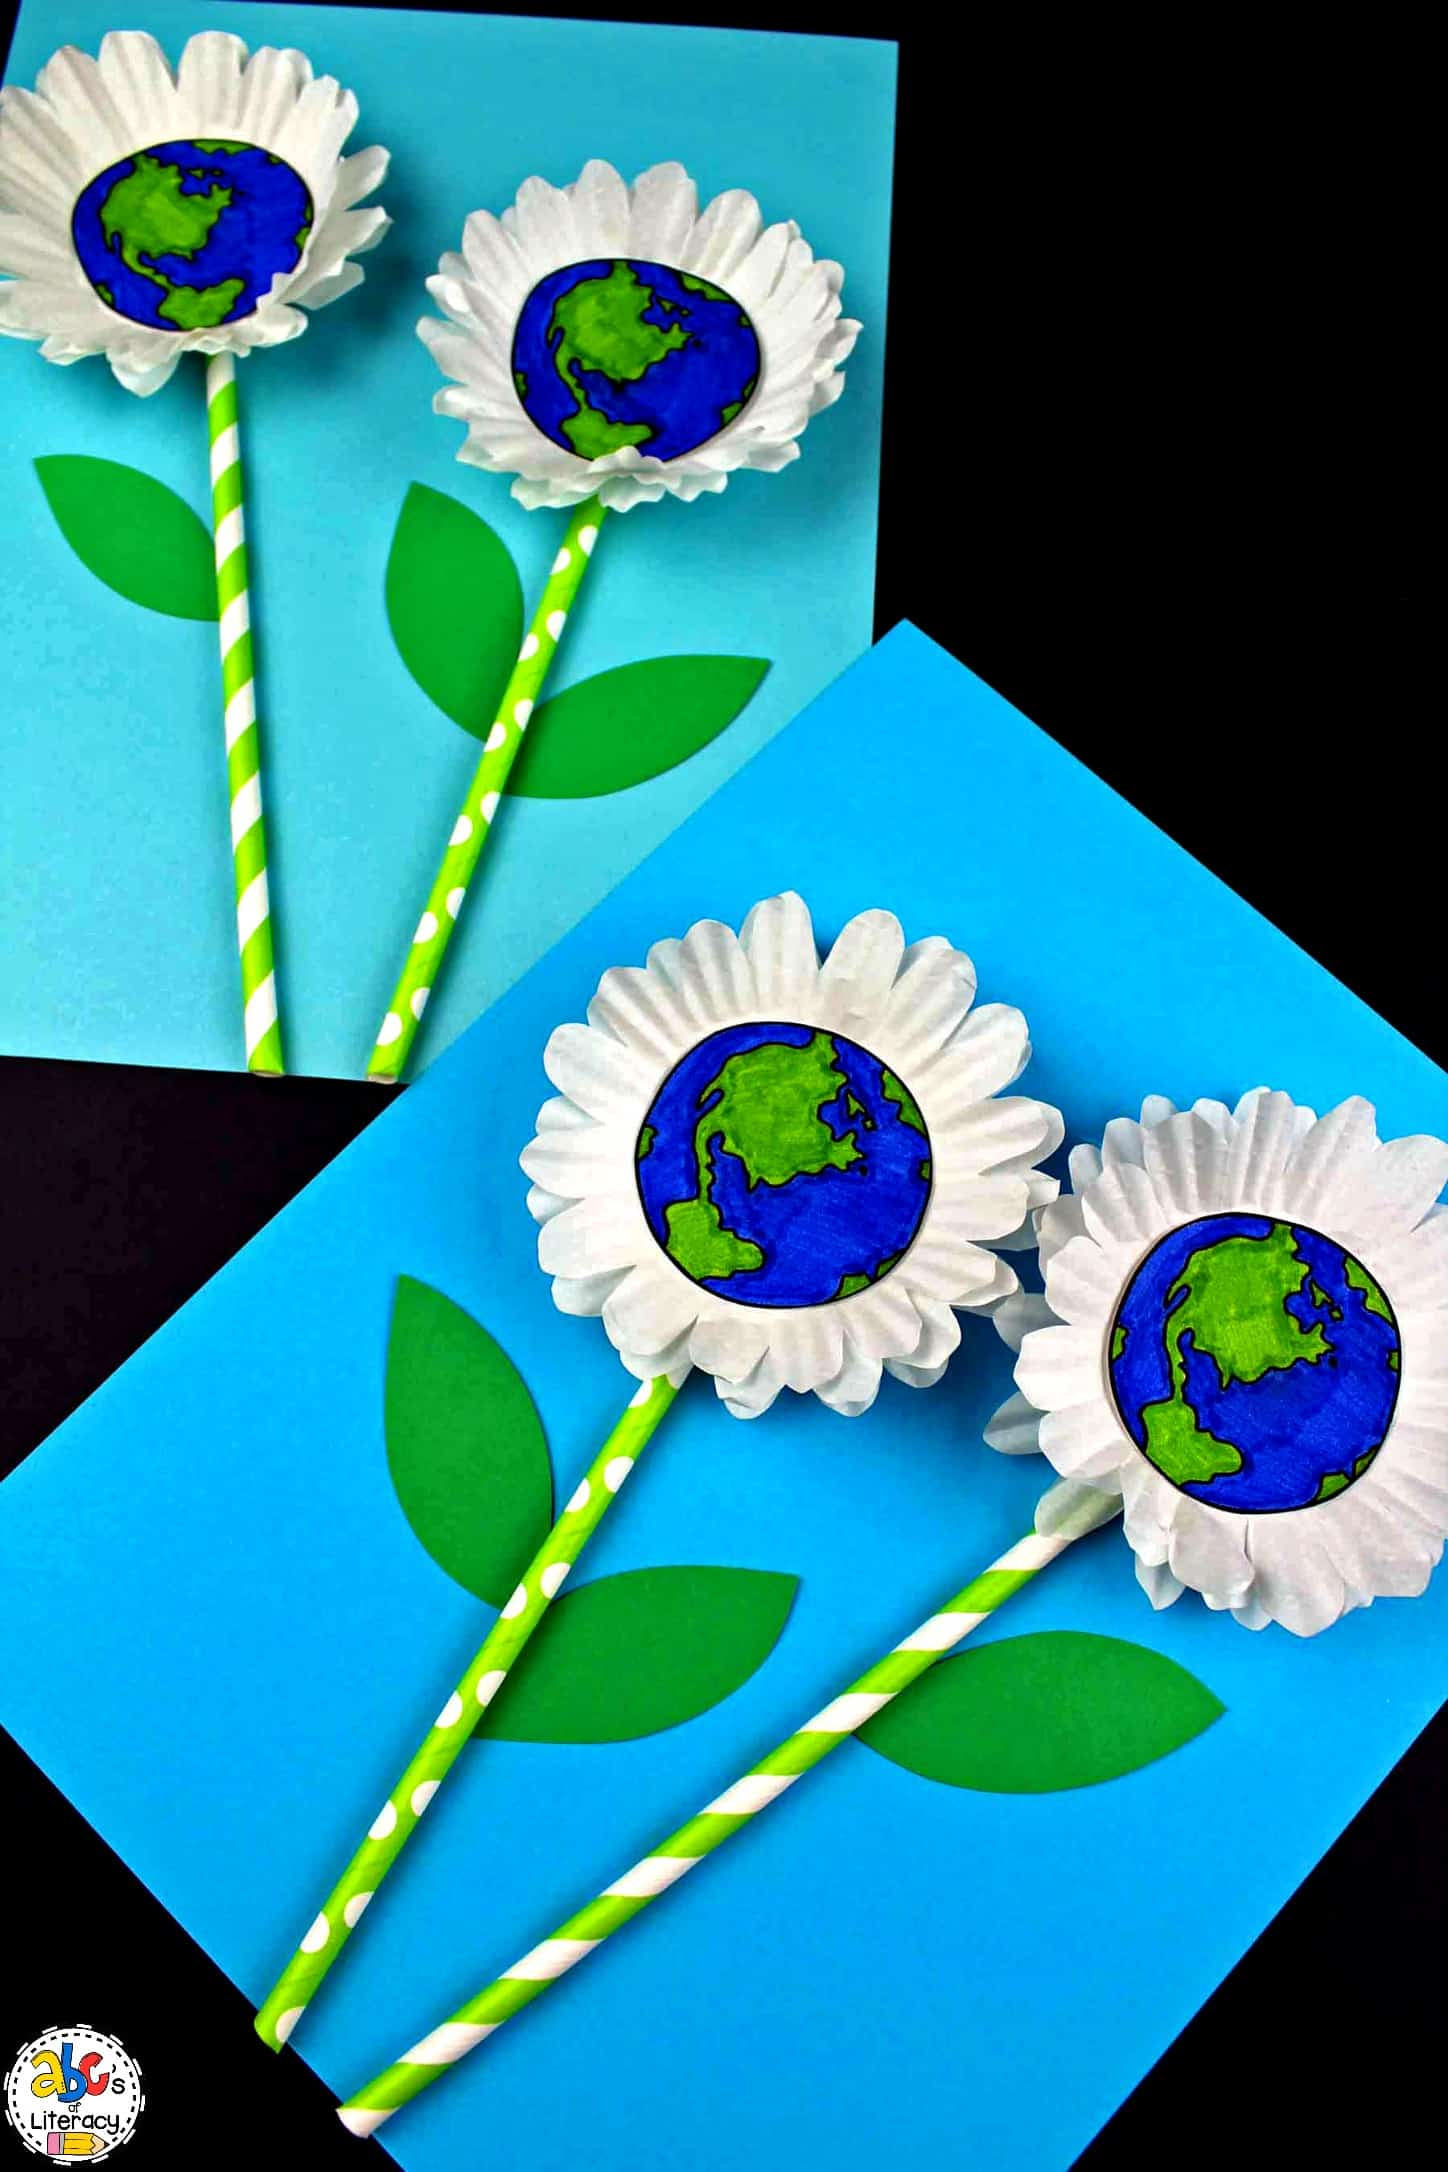 Earth Day Flower Craft, Earth Day Craft, Flower Craft, Earth Day Activities, Earth Day